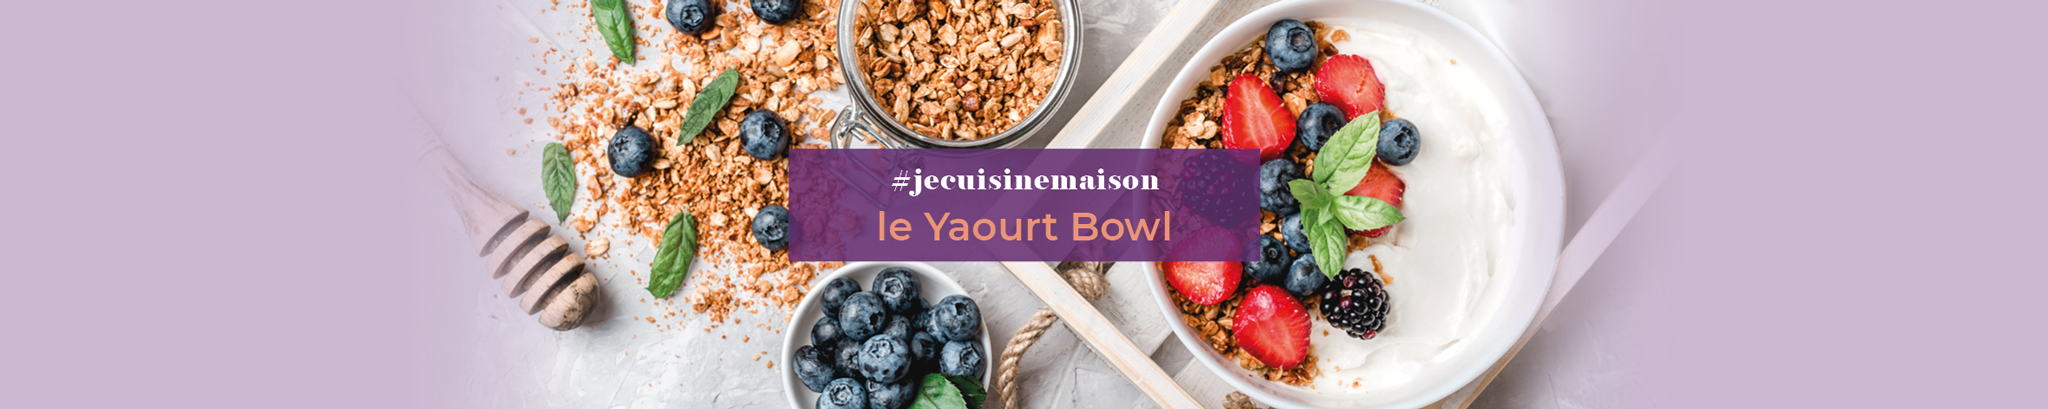 #jecuisinemaison : le yaourt bowl